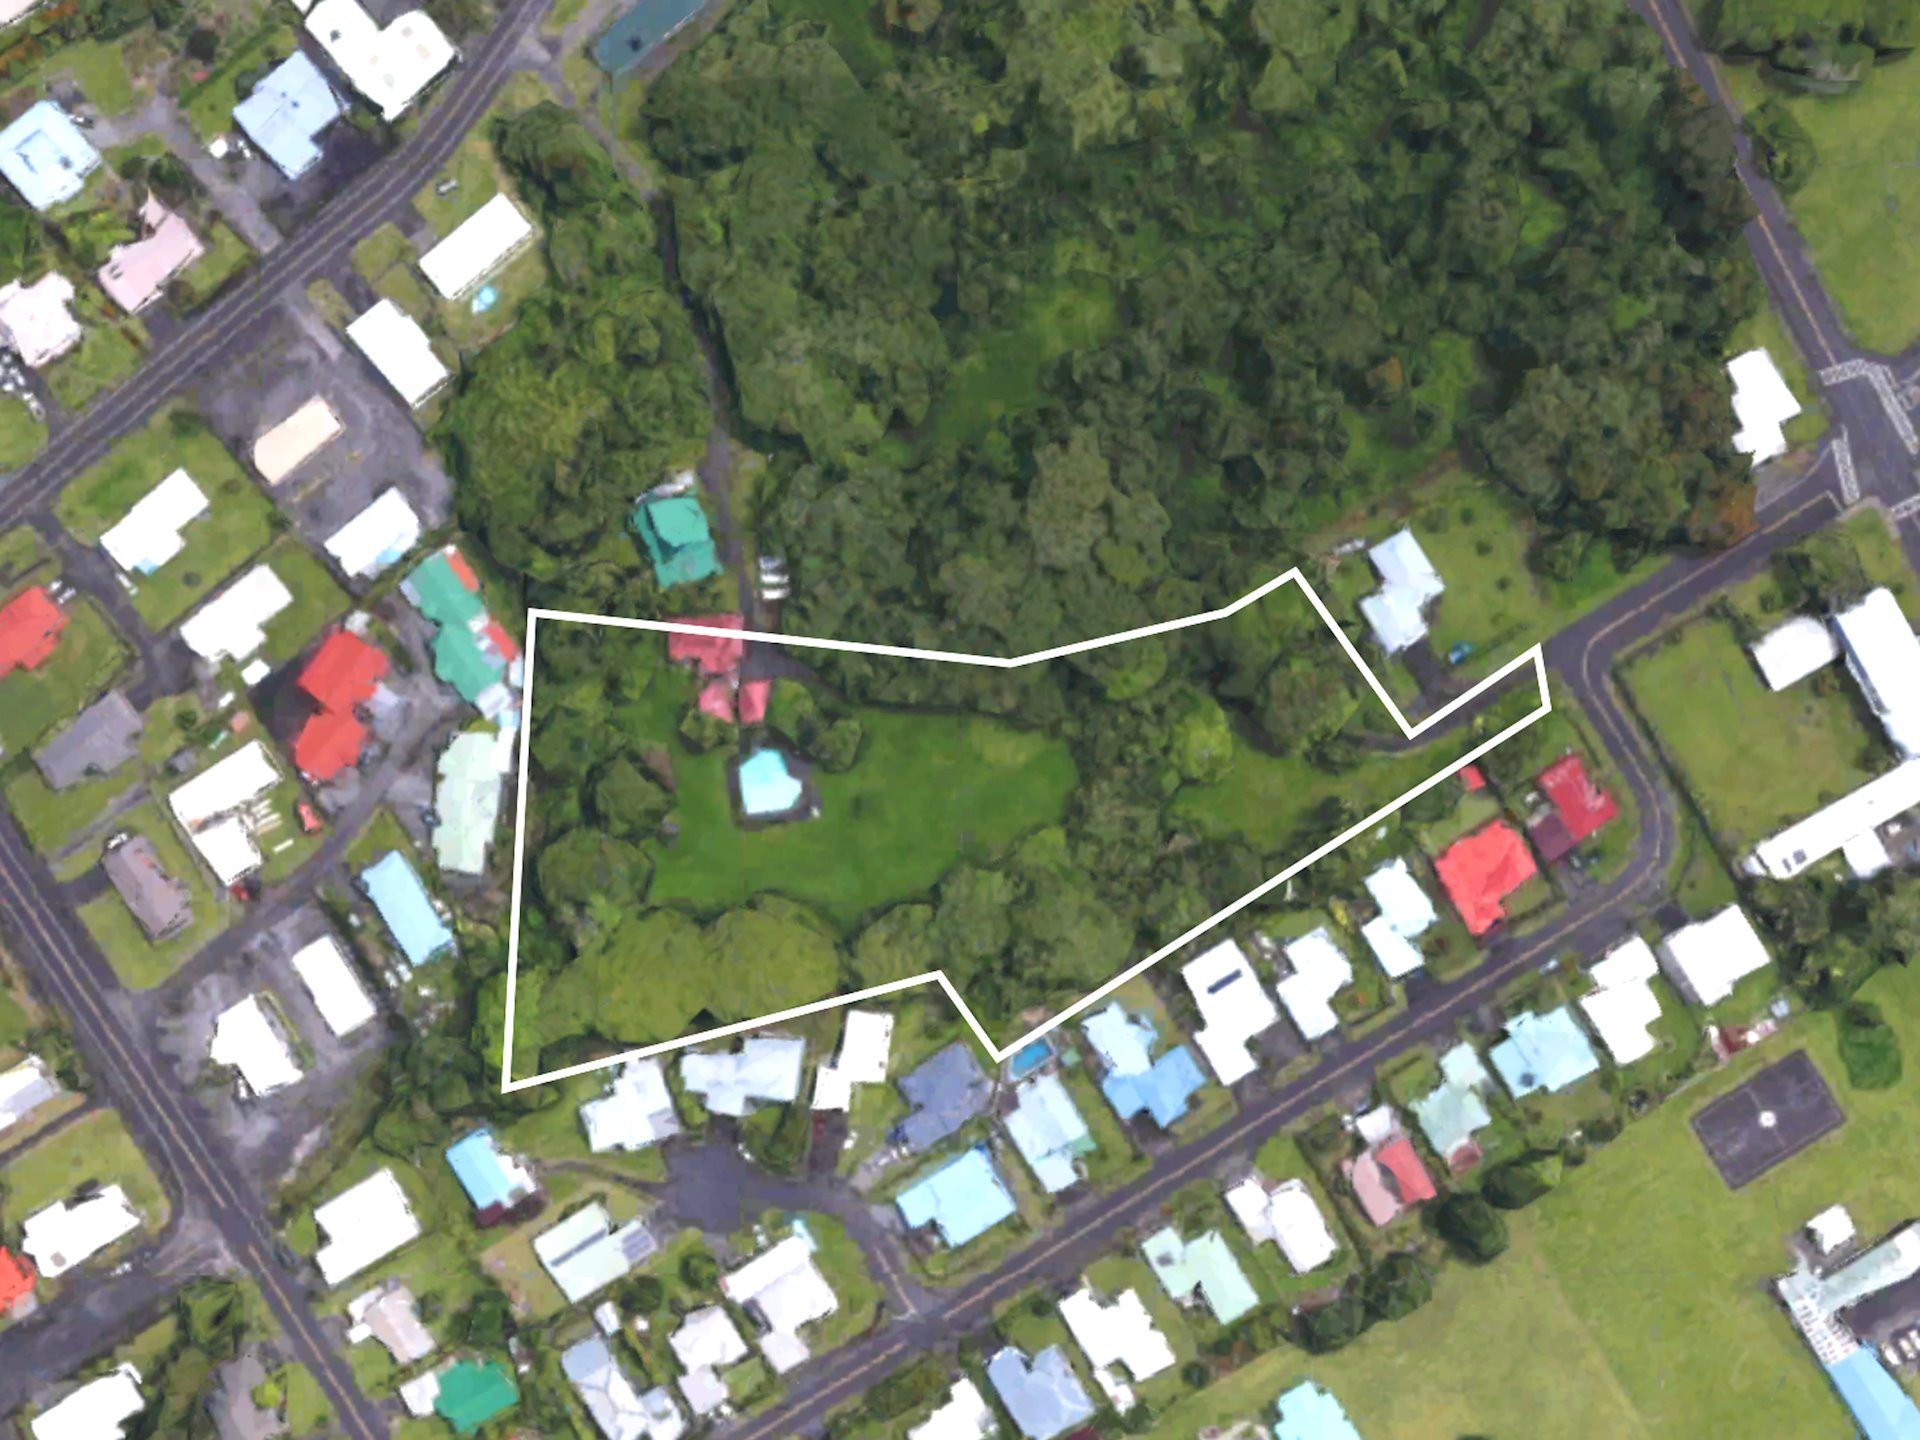 MULTI-FAMILY DEVELOPMENT OPPORTUNITY DOWNTOWN HILO<br>Hualalai Court - 3.29 Acres<br>Proposed 105 unit Affordable/Workforce Housing Development Site<br>4 Blocks from City/County Offices <br>3 Blocks from University of Hawaii Hilo Campus<br>Zoning District RM-1.5 (96 market rate or 105 affordable units)<br>Proposed Project lies within Opportunity Zone<br>Numerous Potential County, State and Federal Tax and Zoning Advantages<br>Building Approval in Process<br>Old home on property currently occupied by tenants